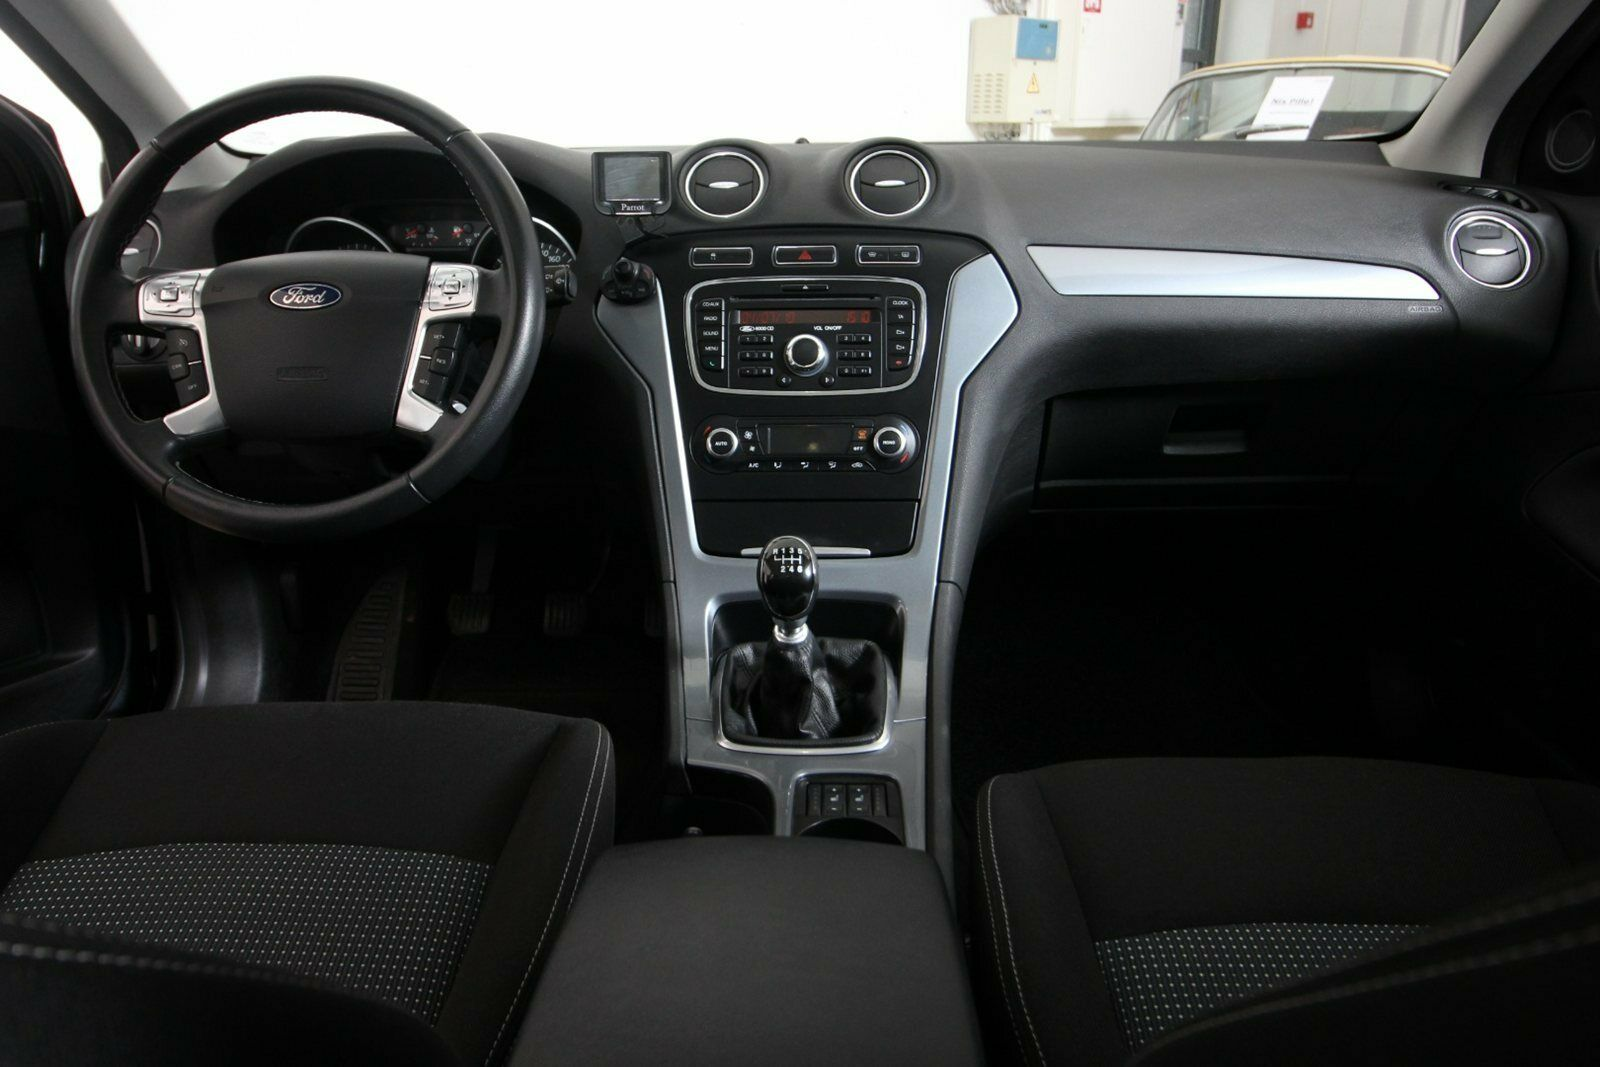 Ford Mondeo TDCi 140 Trend stc.